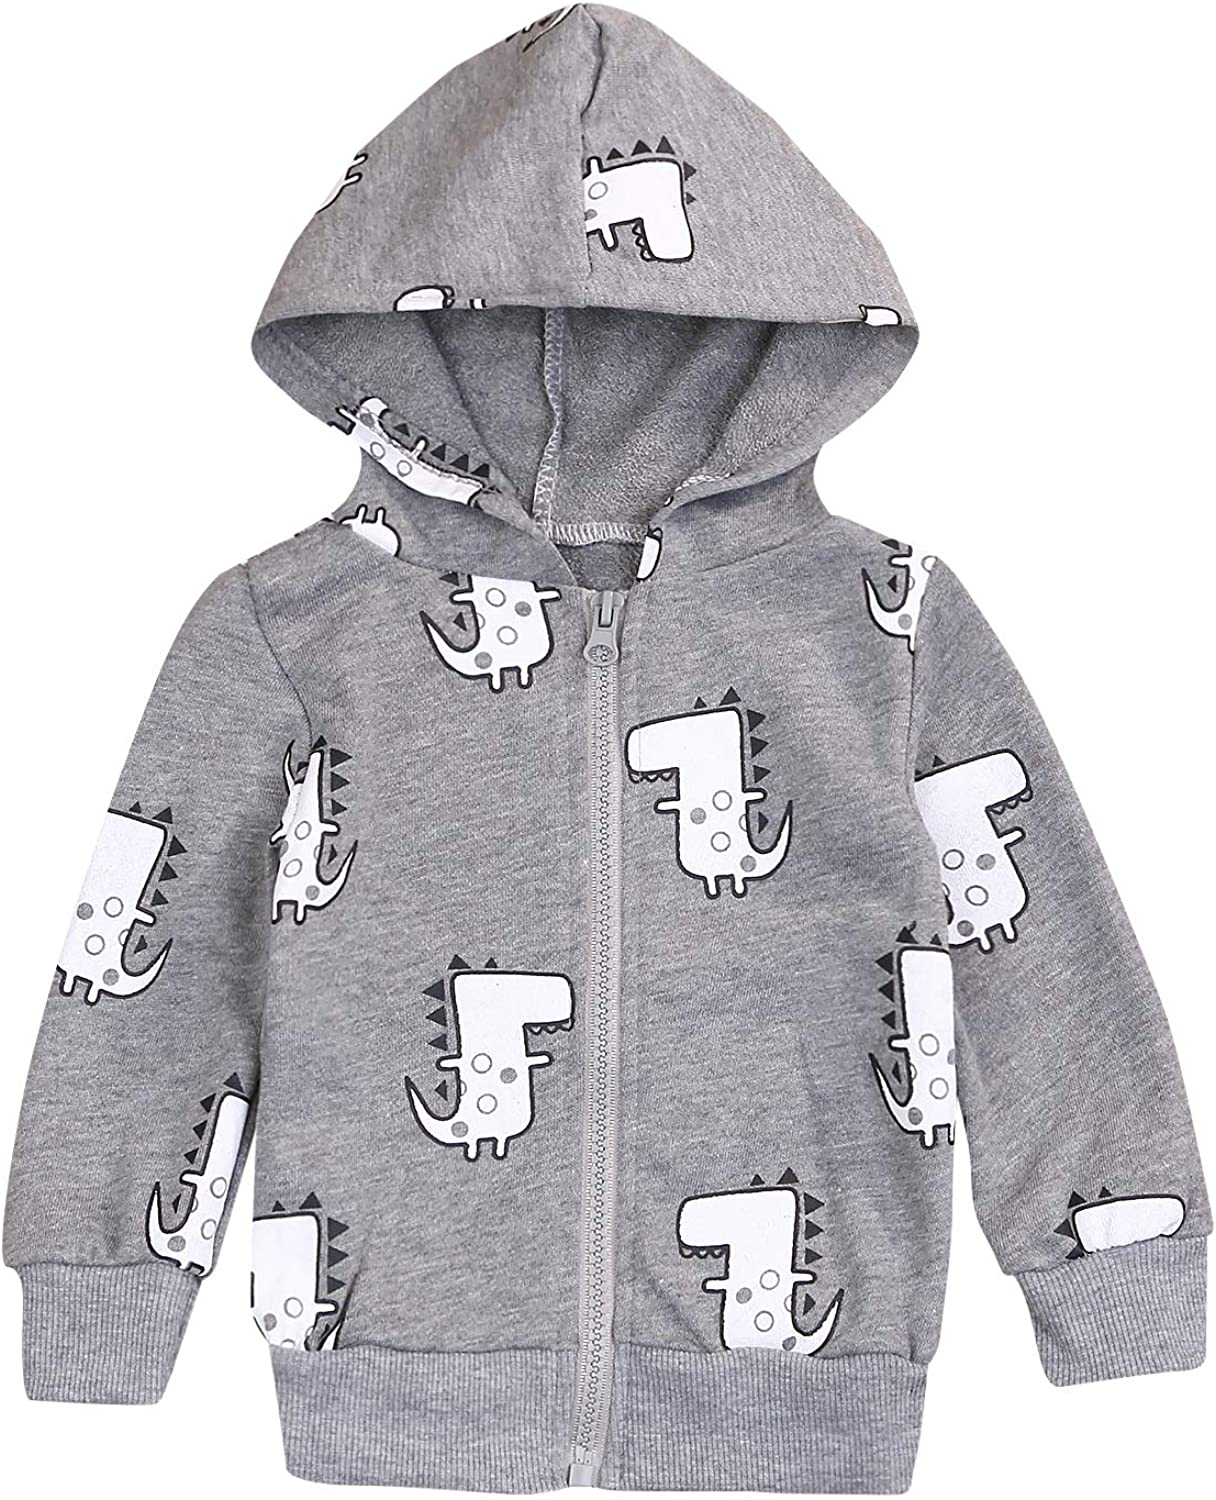 YOUNGER TREE Infrant Baby Boy Clothes Long Sleeve Dinosaur Hooded Sweatshirt Zipper Autumn Outfits